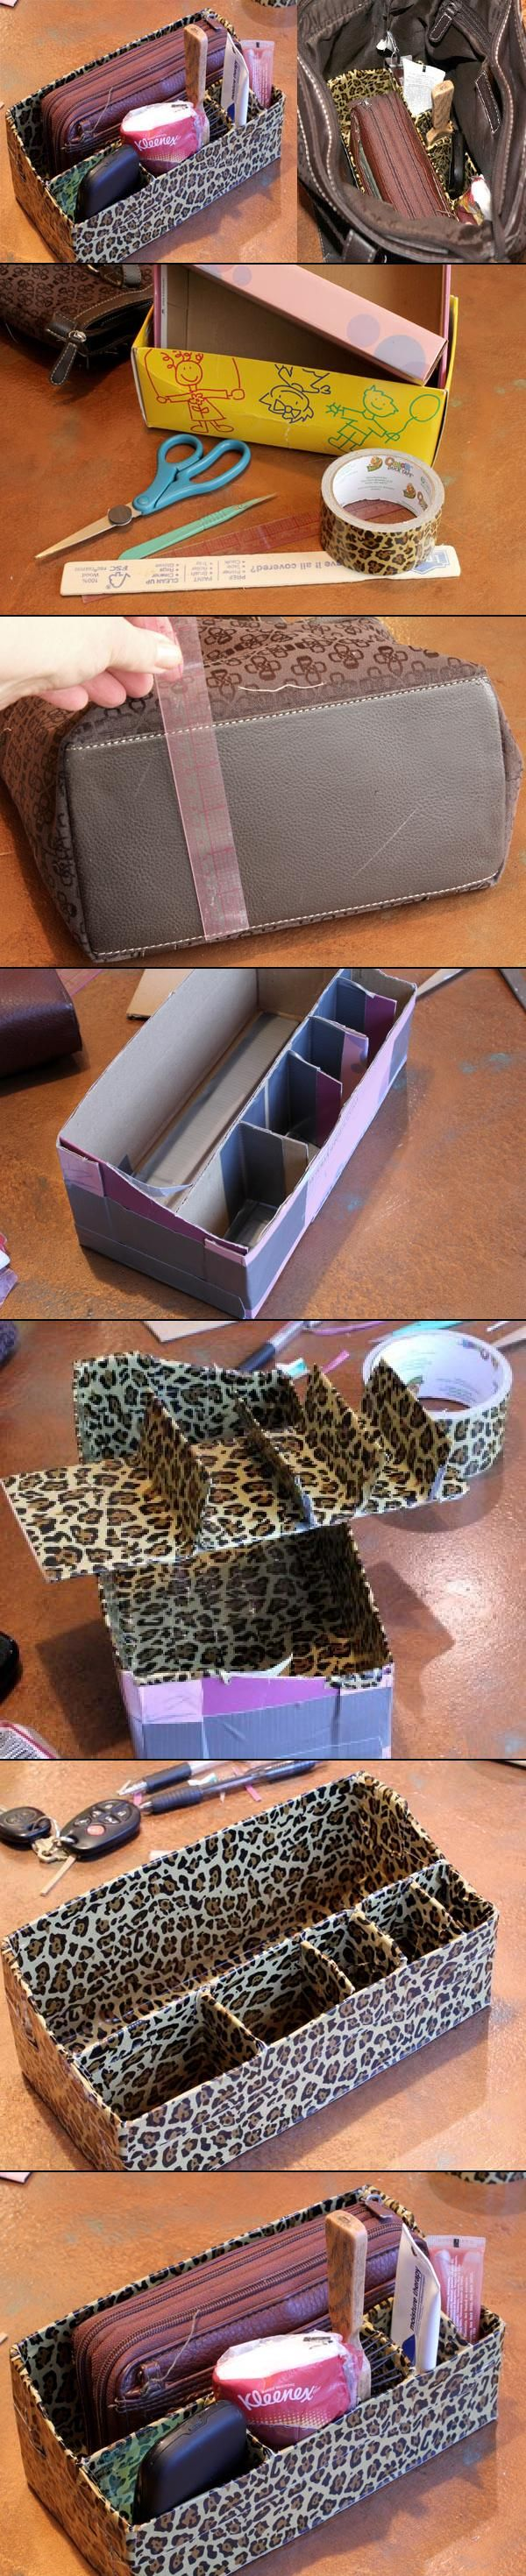 DIY Duct Tape Purse Organizer, by Me Makey Things. (The no-sew alternative to expensive Butler Bags!!)